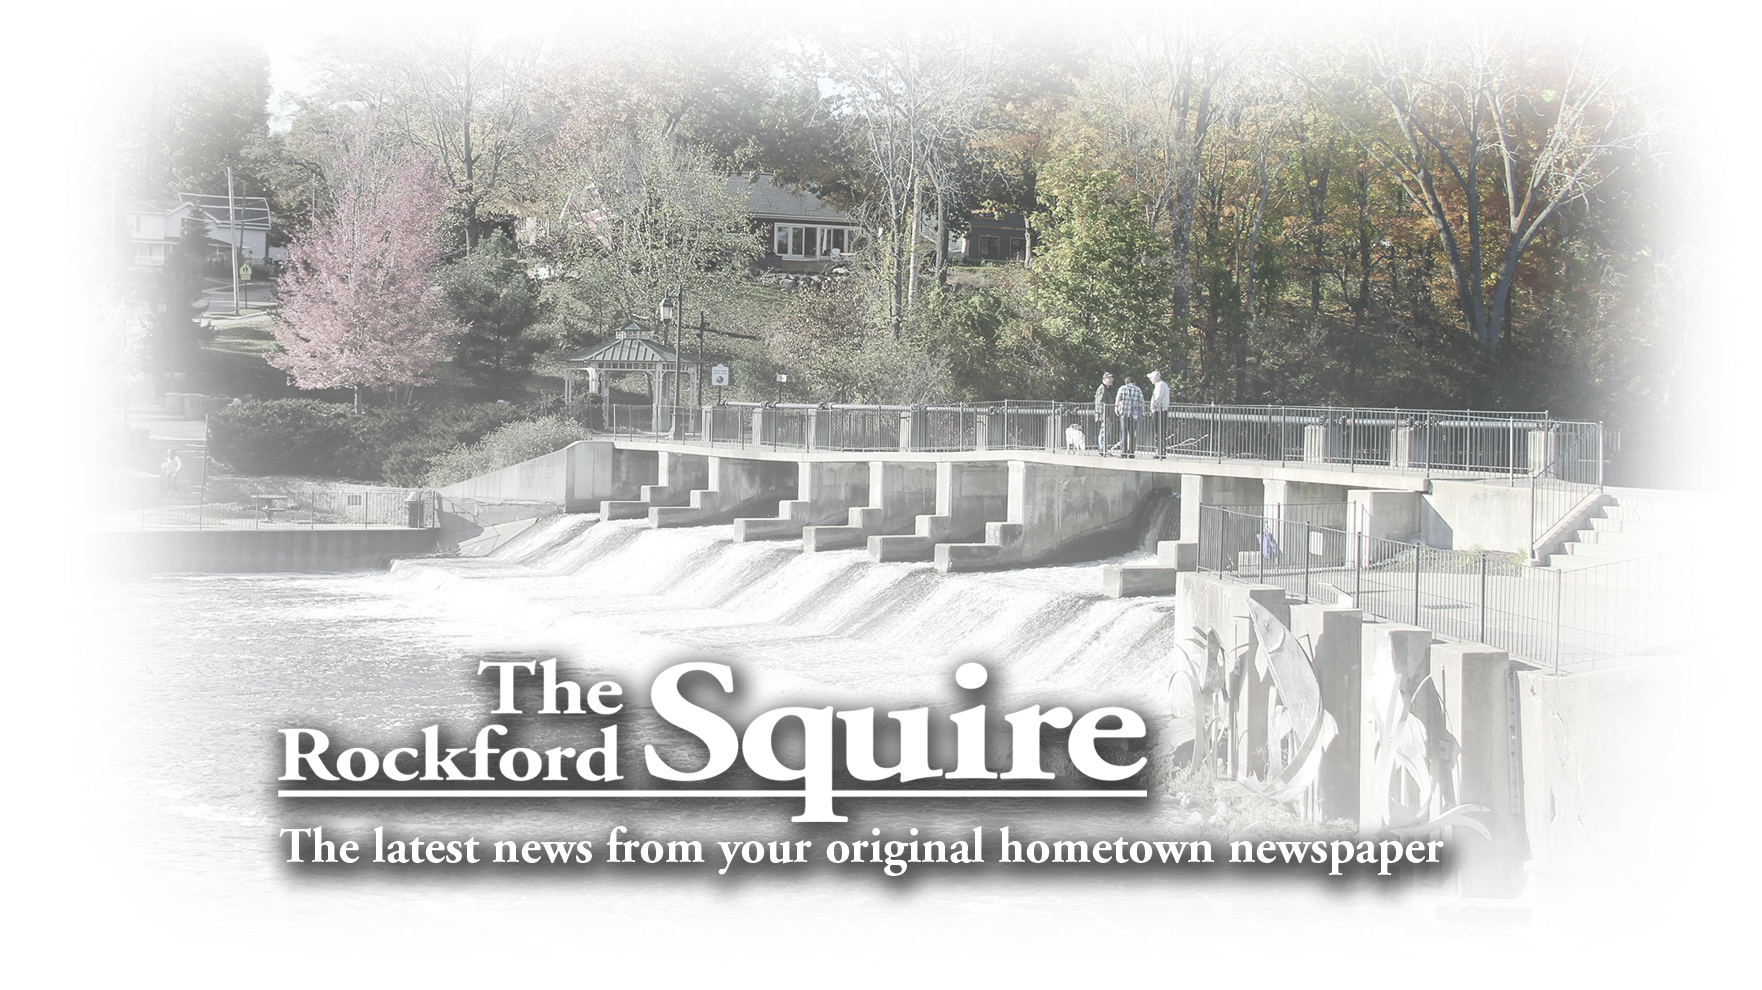 Obituaries The Rockford Squire